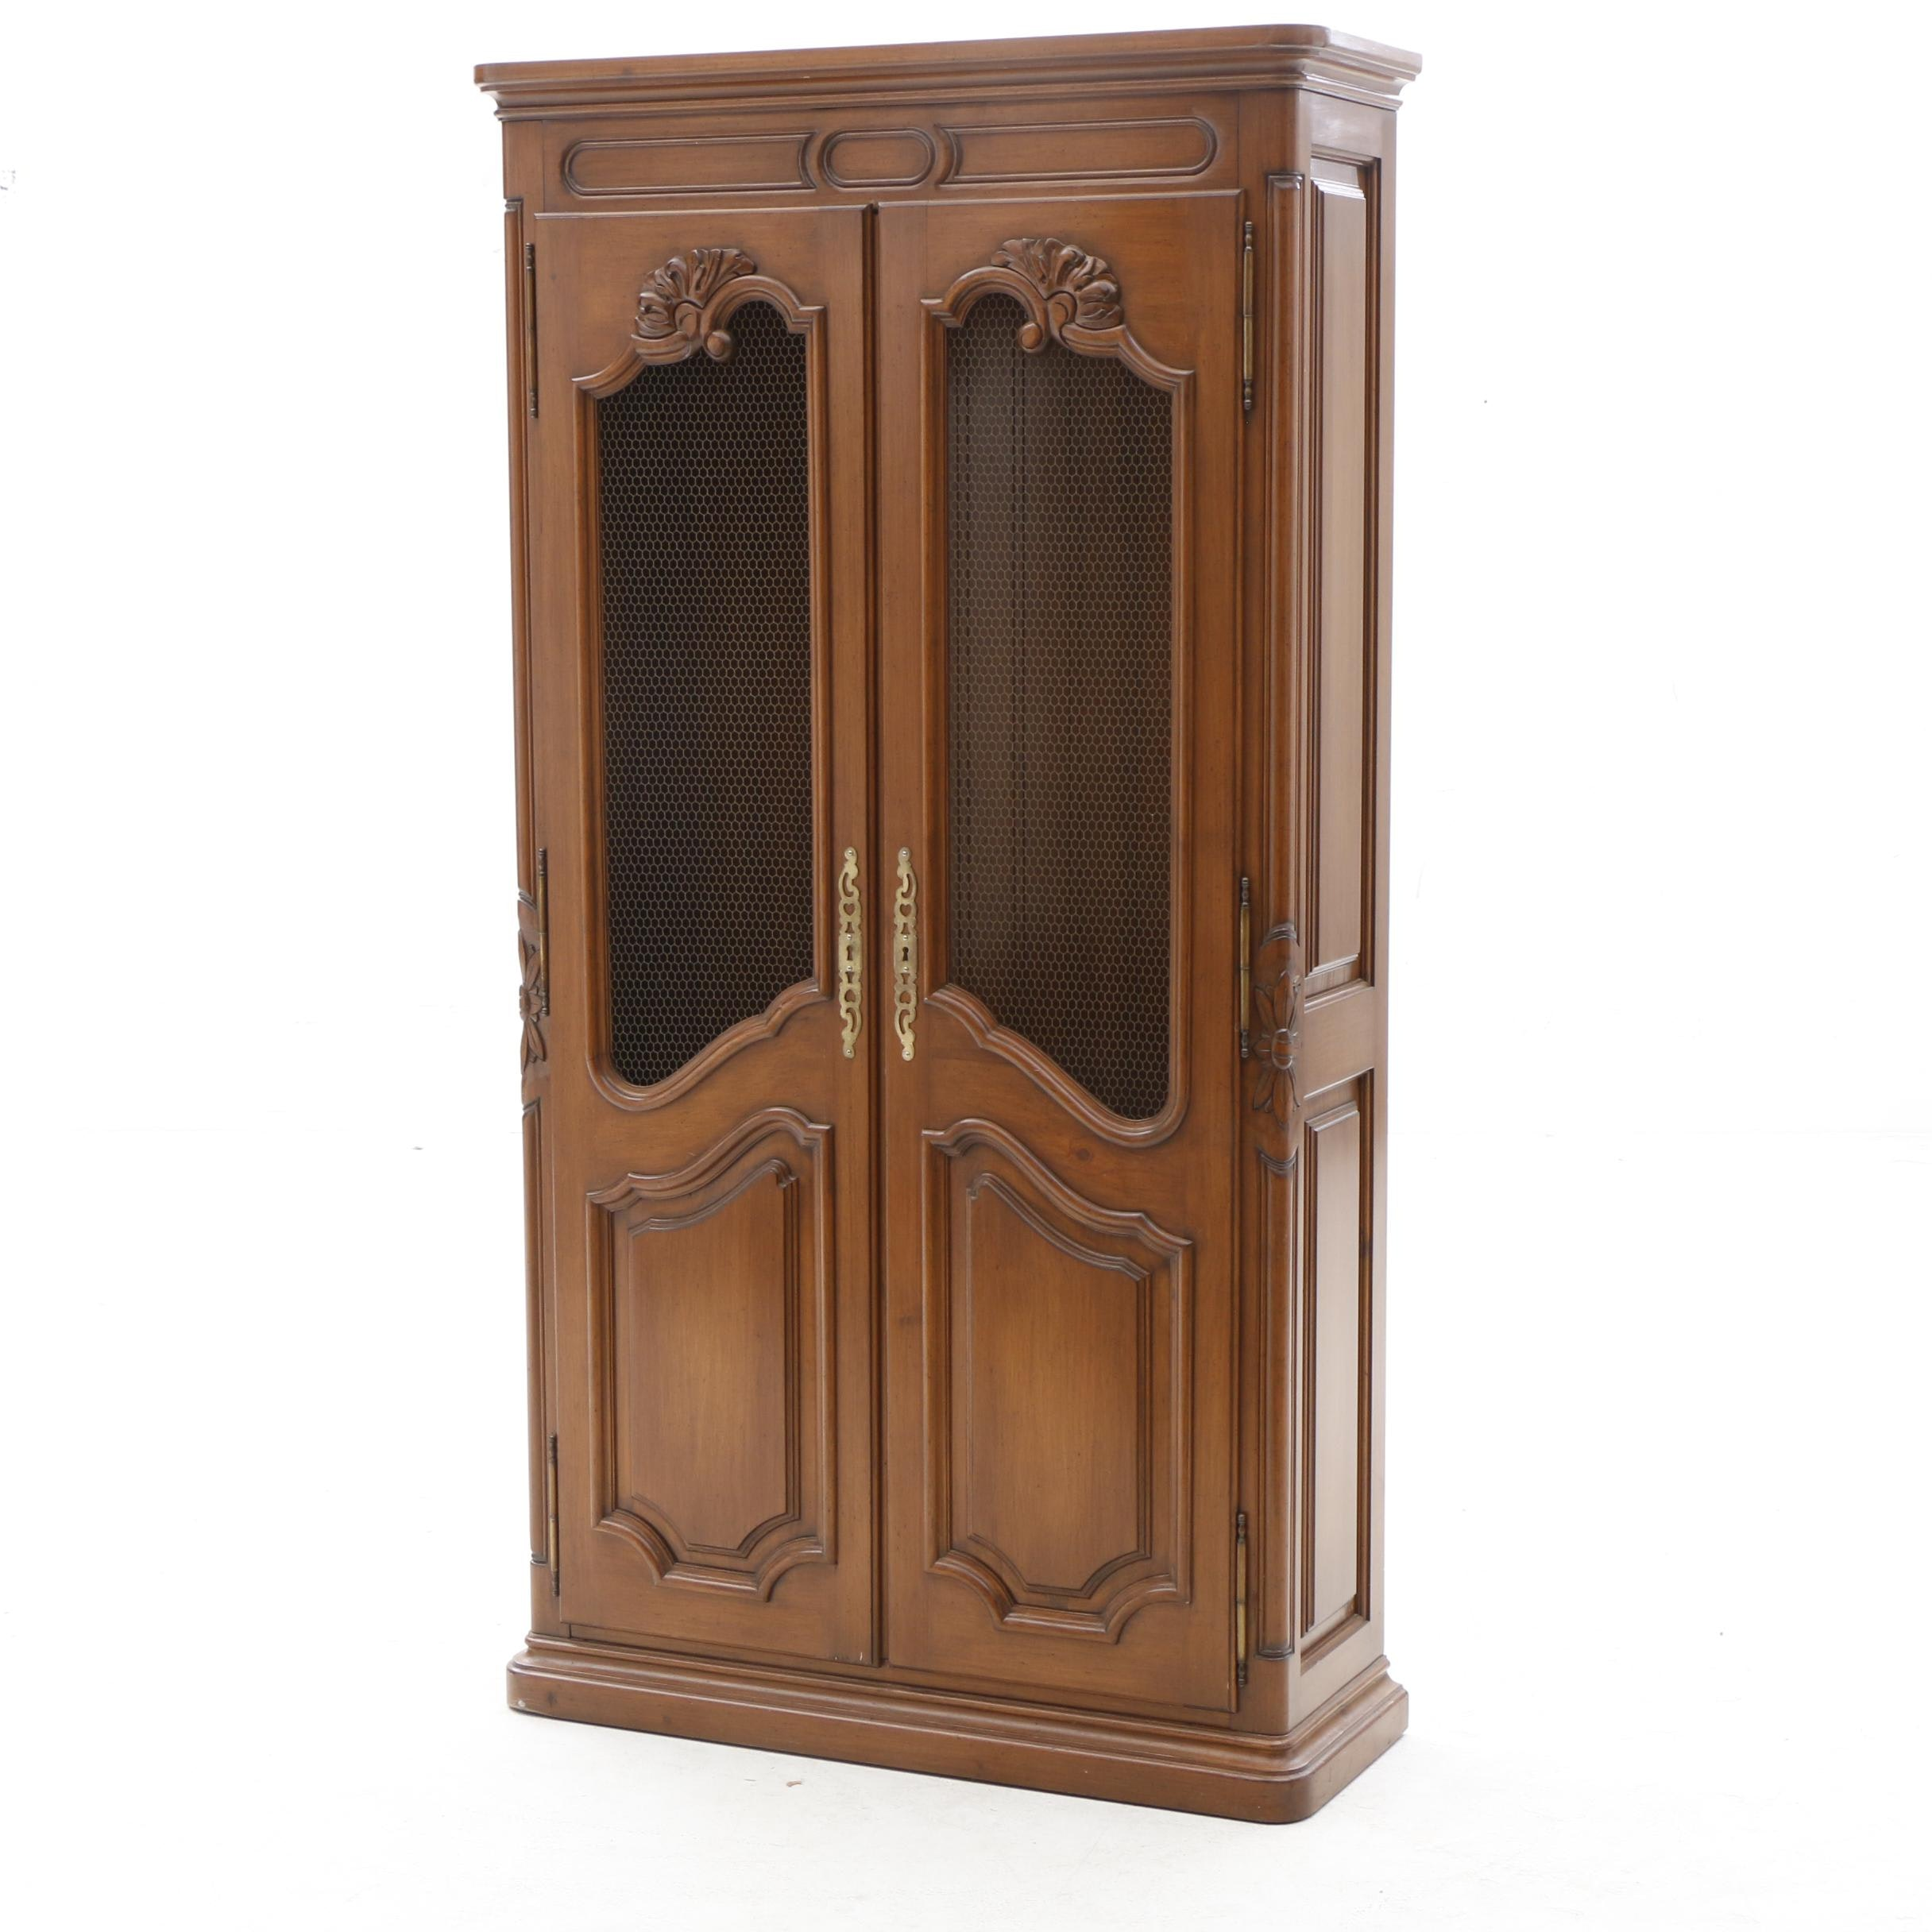 Circa 1960s French Provincial Style Cabinet